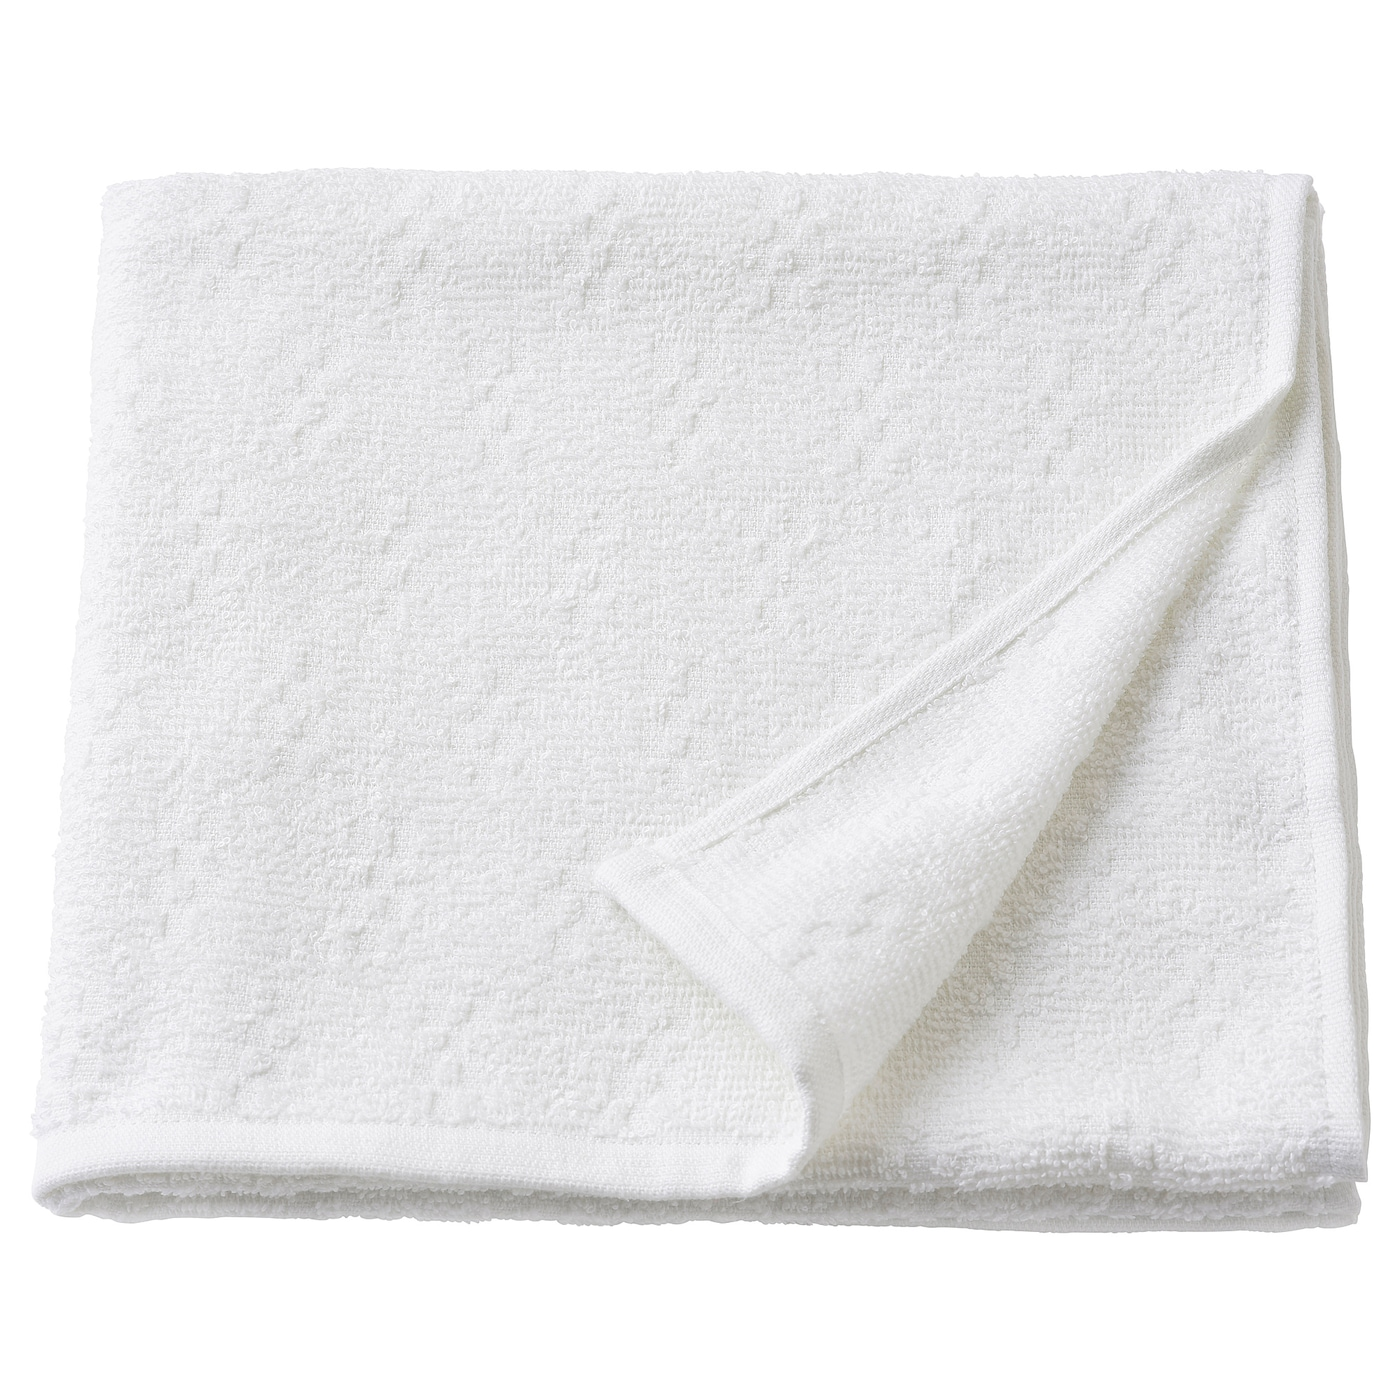 N 196 Rsen Bath Towel White Ikea